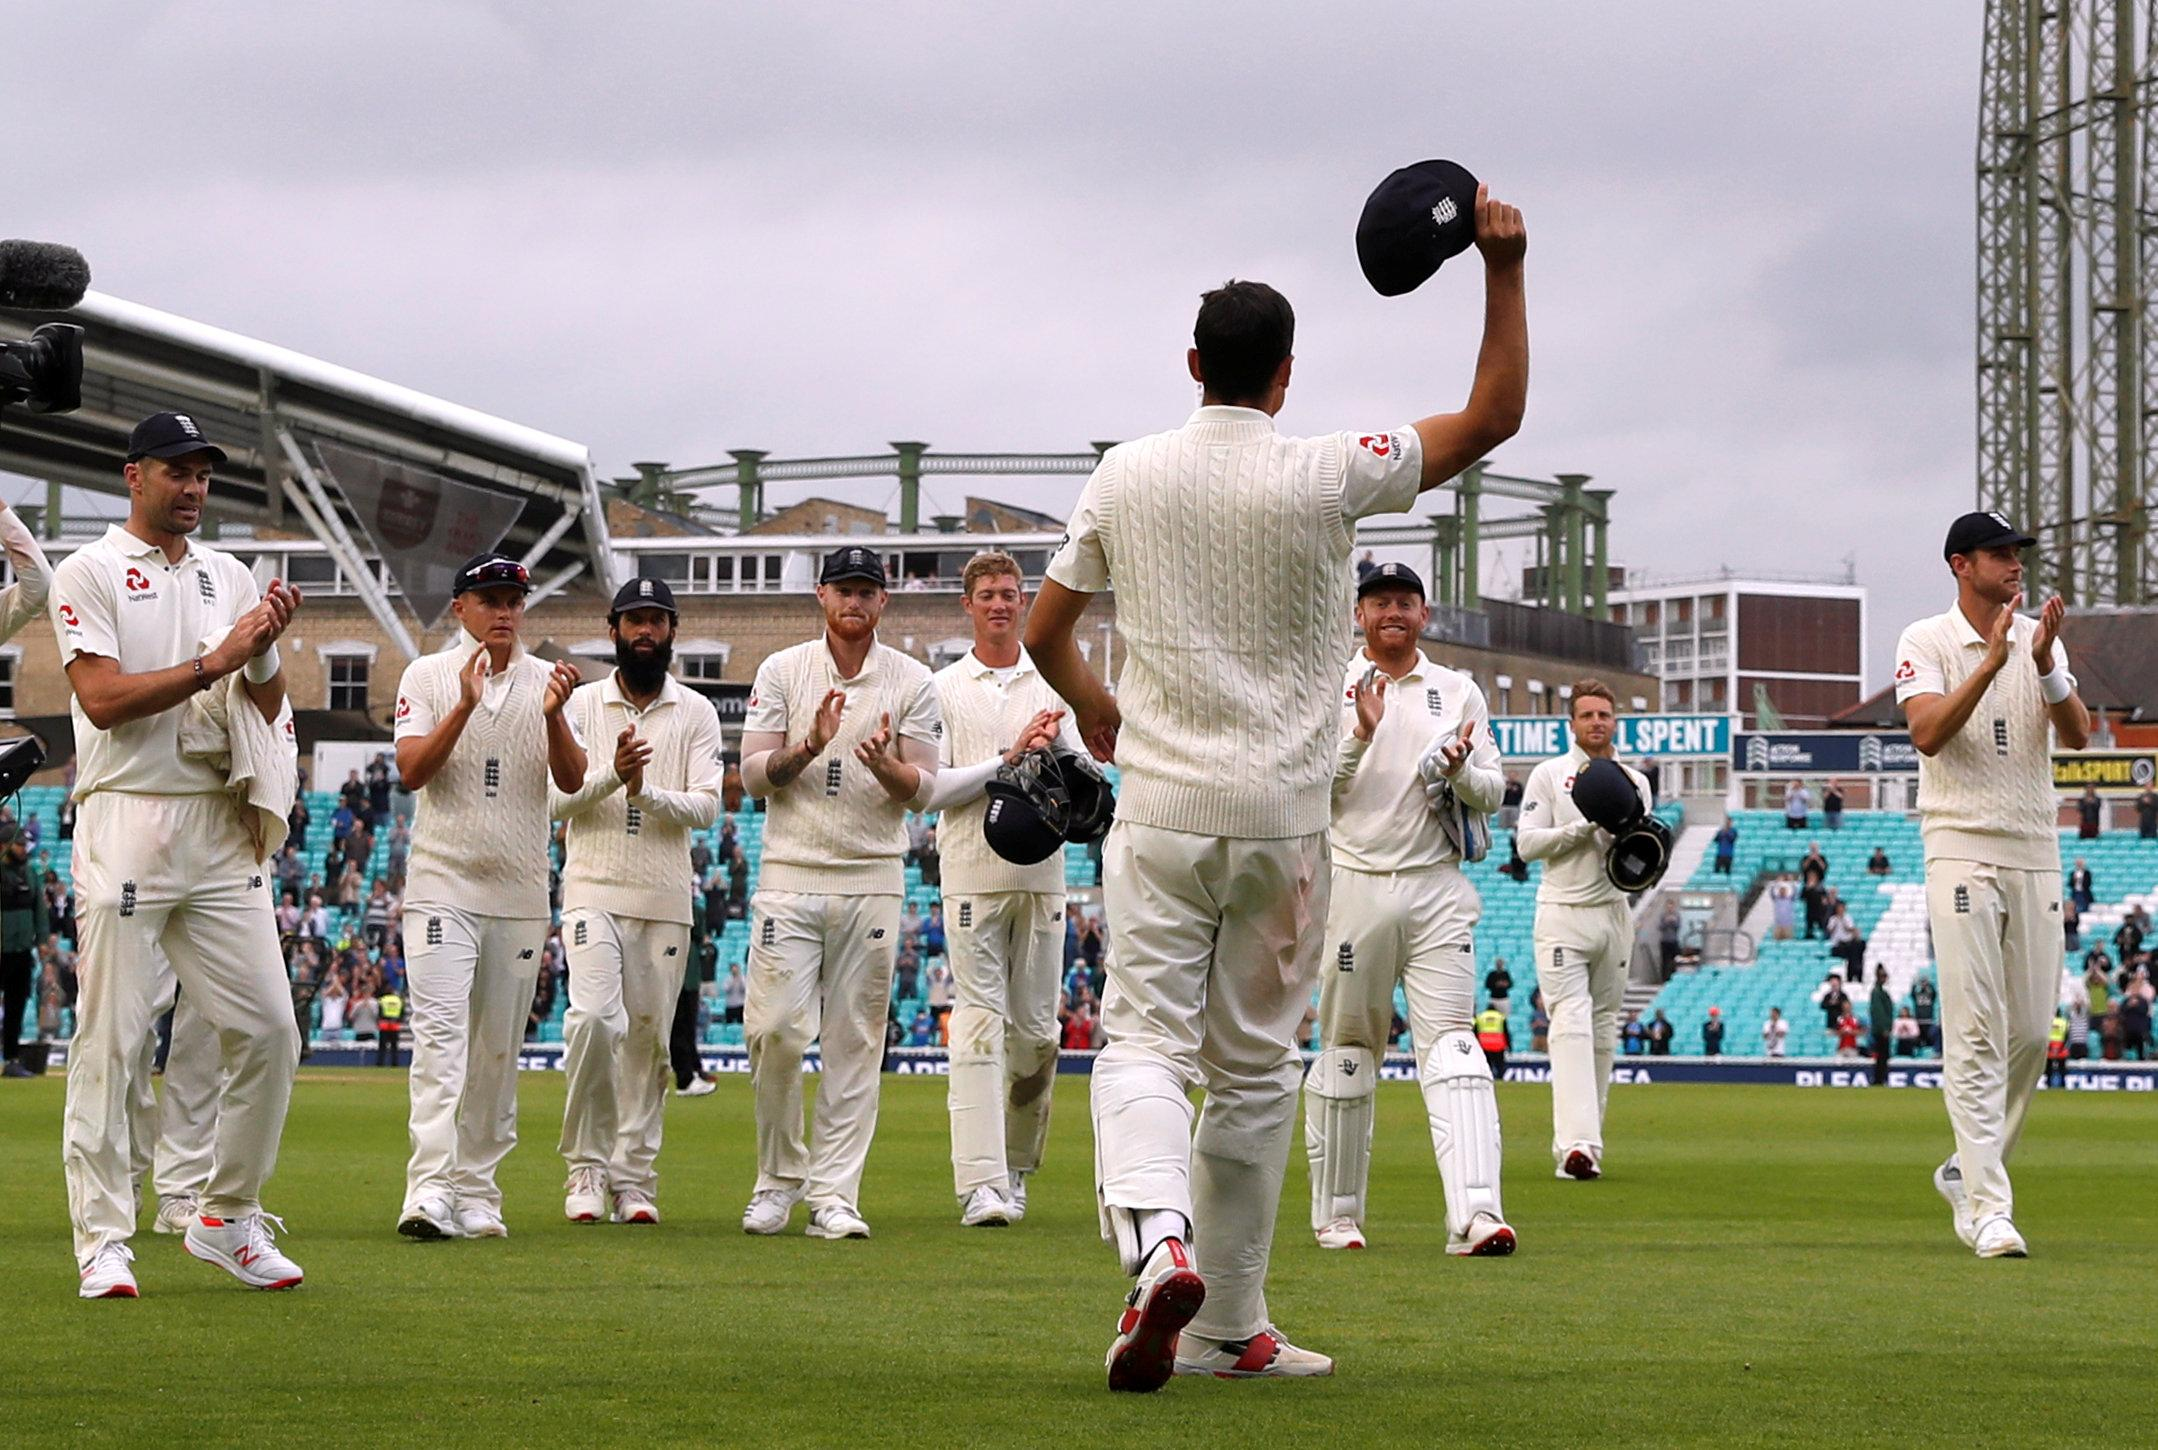 Alastair Cook walked the England team off the field in his final appearance for his country